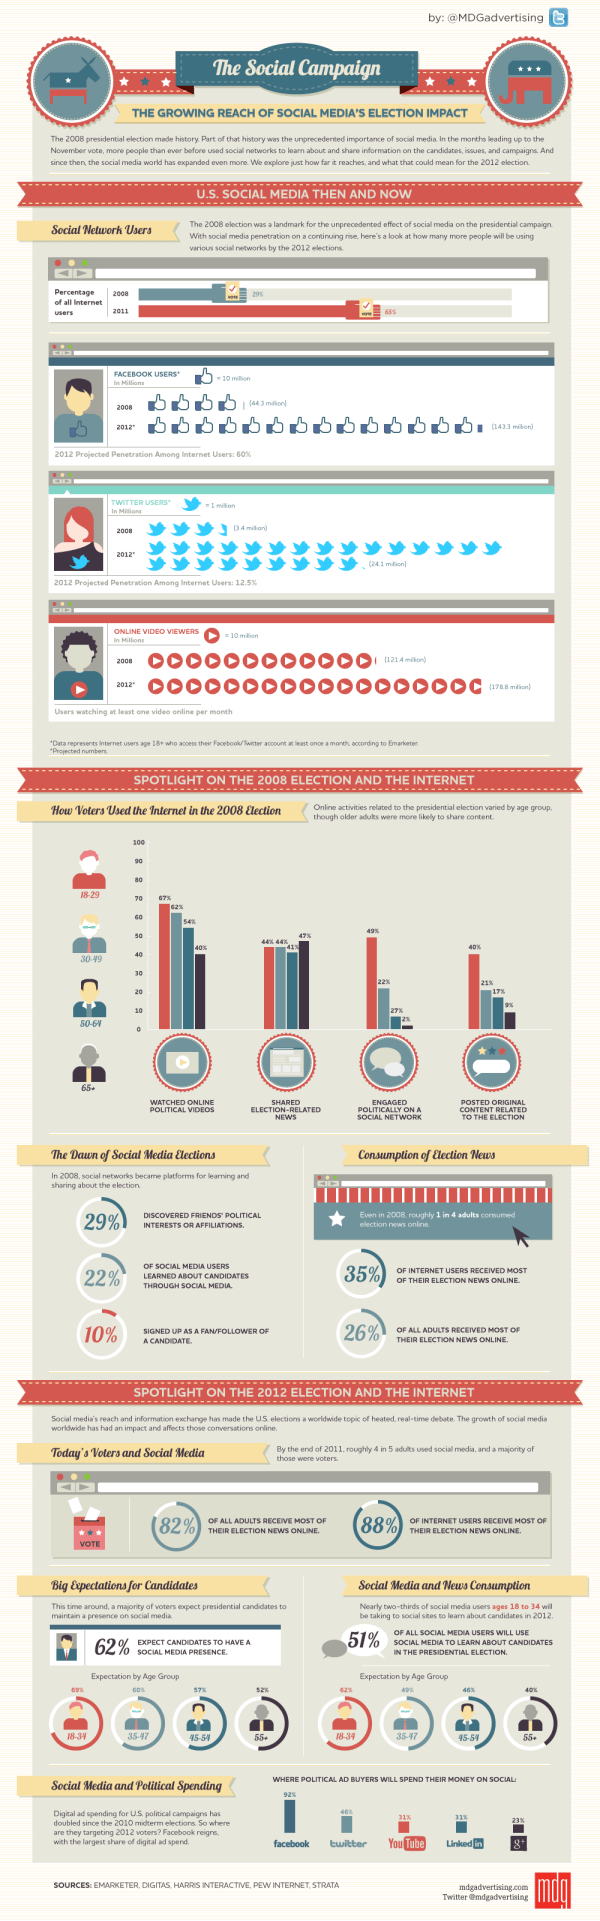 The Social Campaign: The Growing Reach of Social Media's Election Impact [infographic by MDG Advertising]